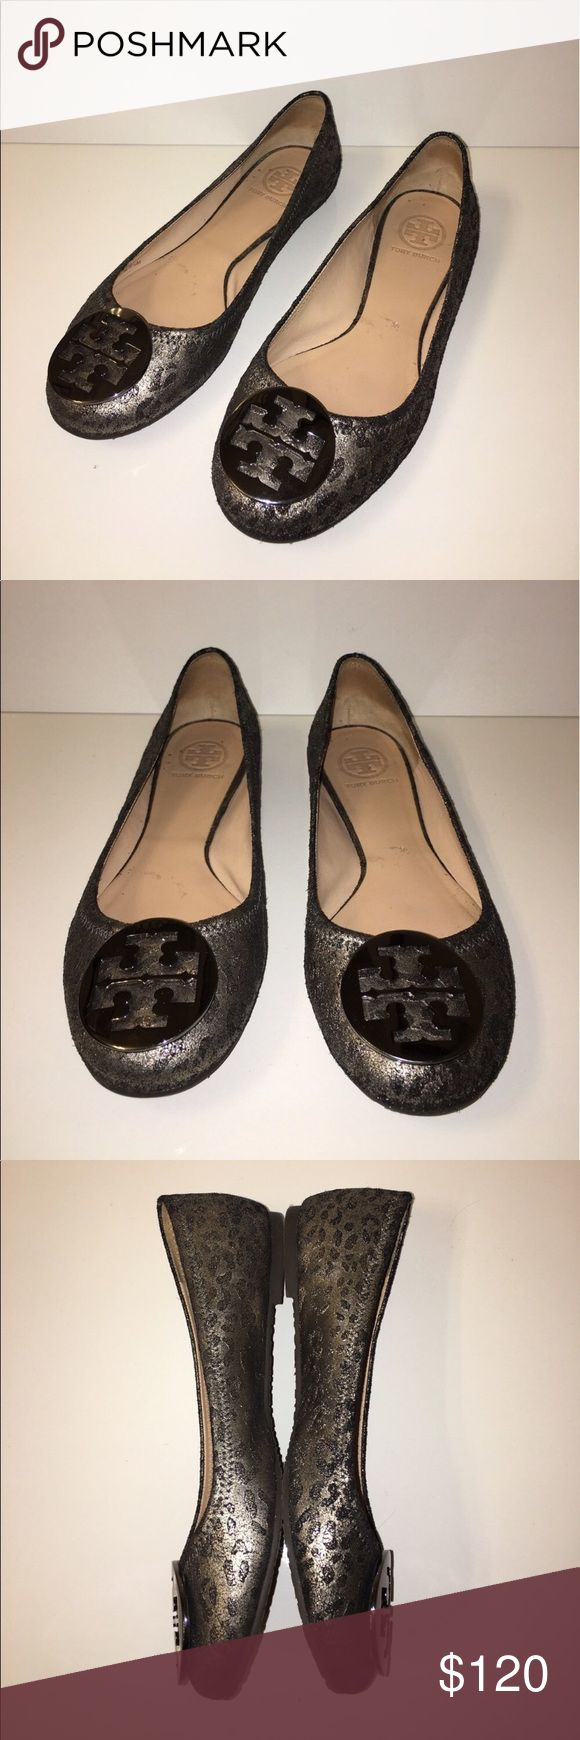 Tory Burch Reva Metallic Leopard Ballet Flats Tory Burch Reva Metallic Leopard Ballet Flats. Great condition! Tory Burch Shoes Flats & Loafers